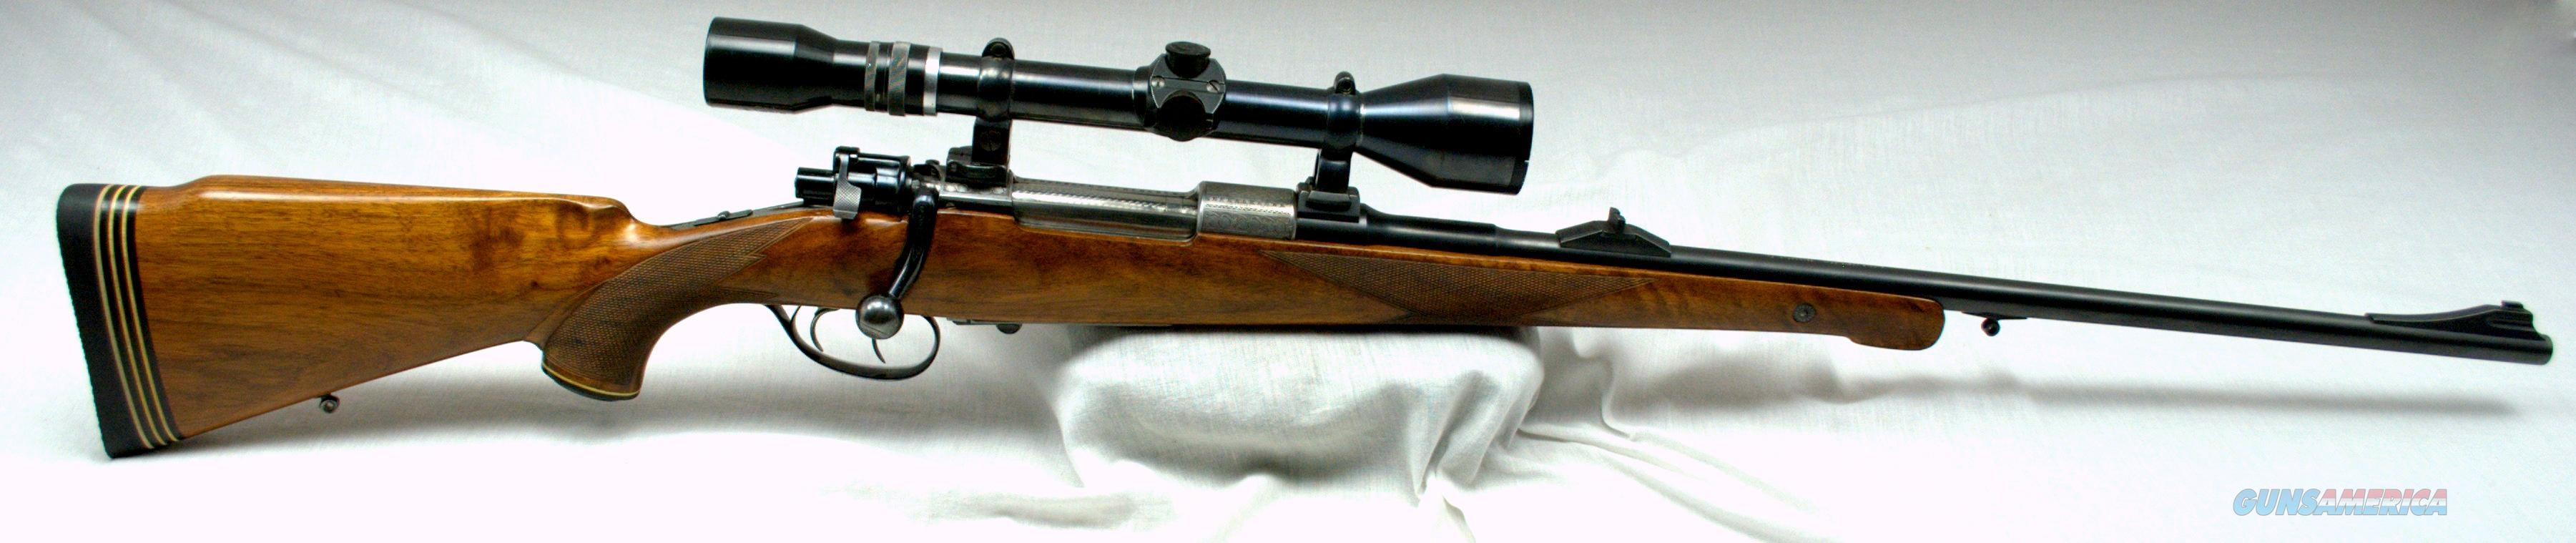 MAUSER 98 CUSTOM BOLT ACTION RIFLE 257 ROBERTS  Guns > Rifles > Mauser Rifles > German